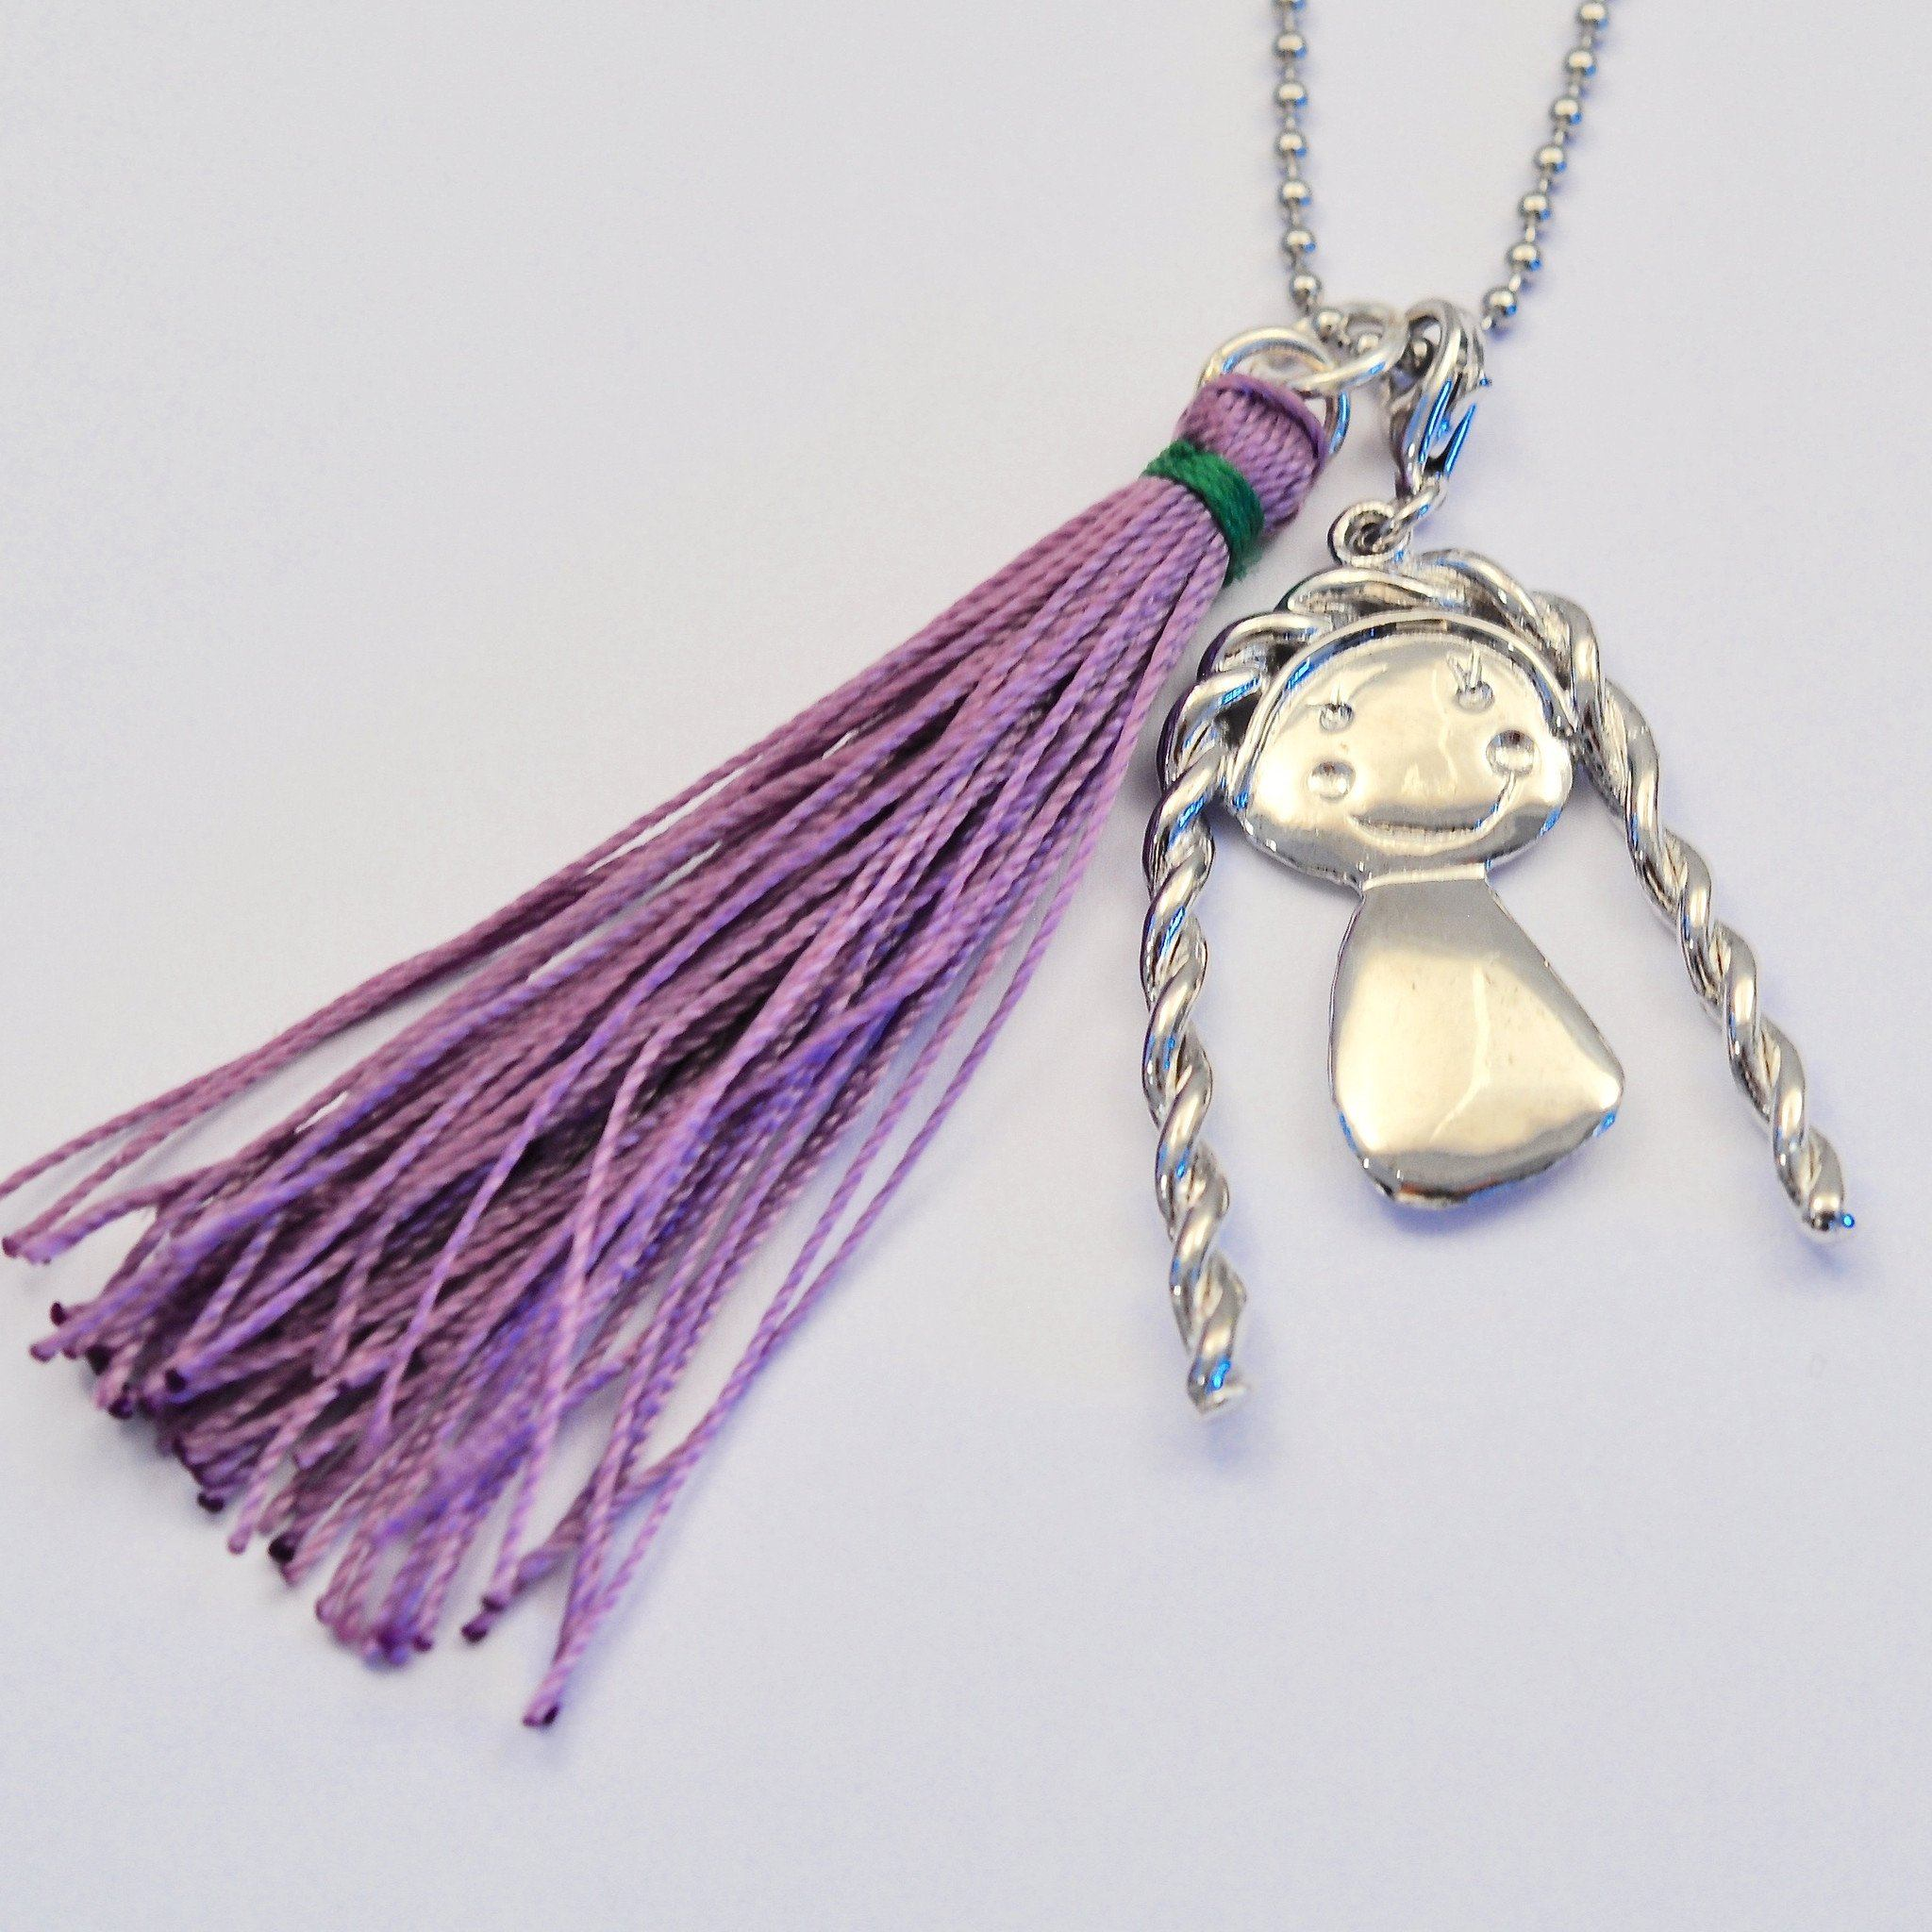 Necklace - Mimi Too Friends Necklace